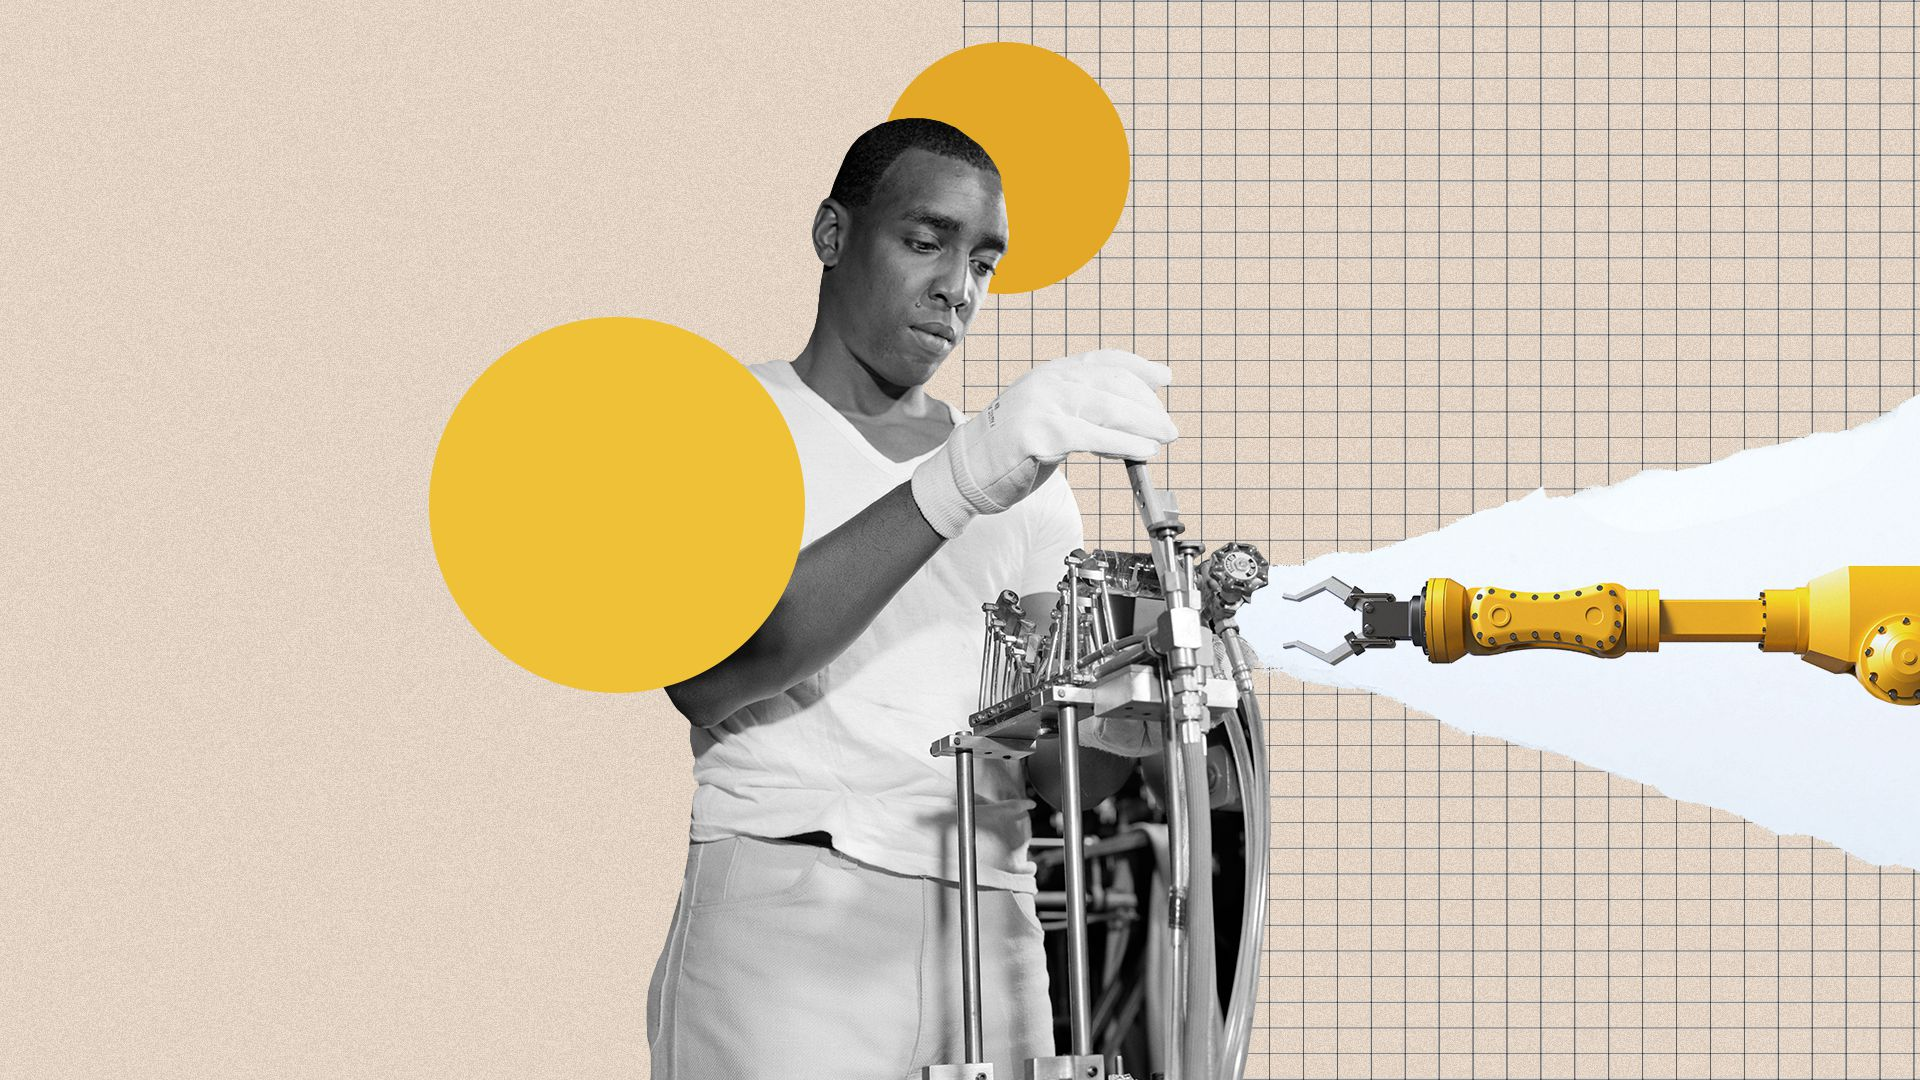 Photo illustration collage of an African American man working on a cathode ray tube machine with an automation arm reaching out towards him.